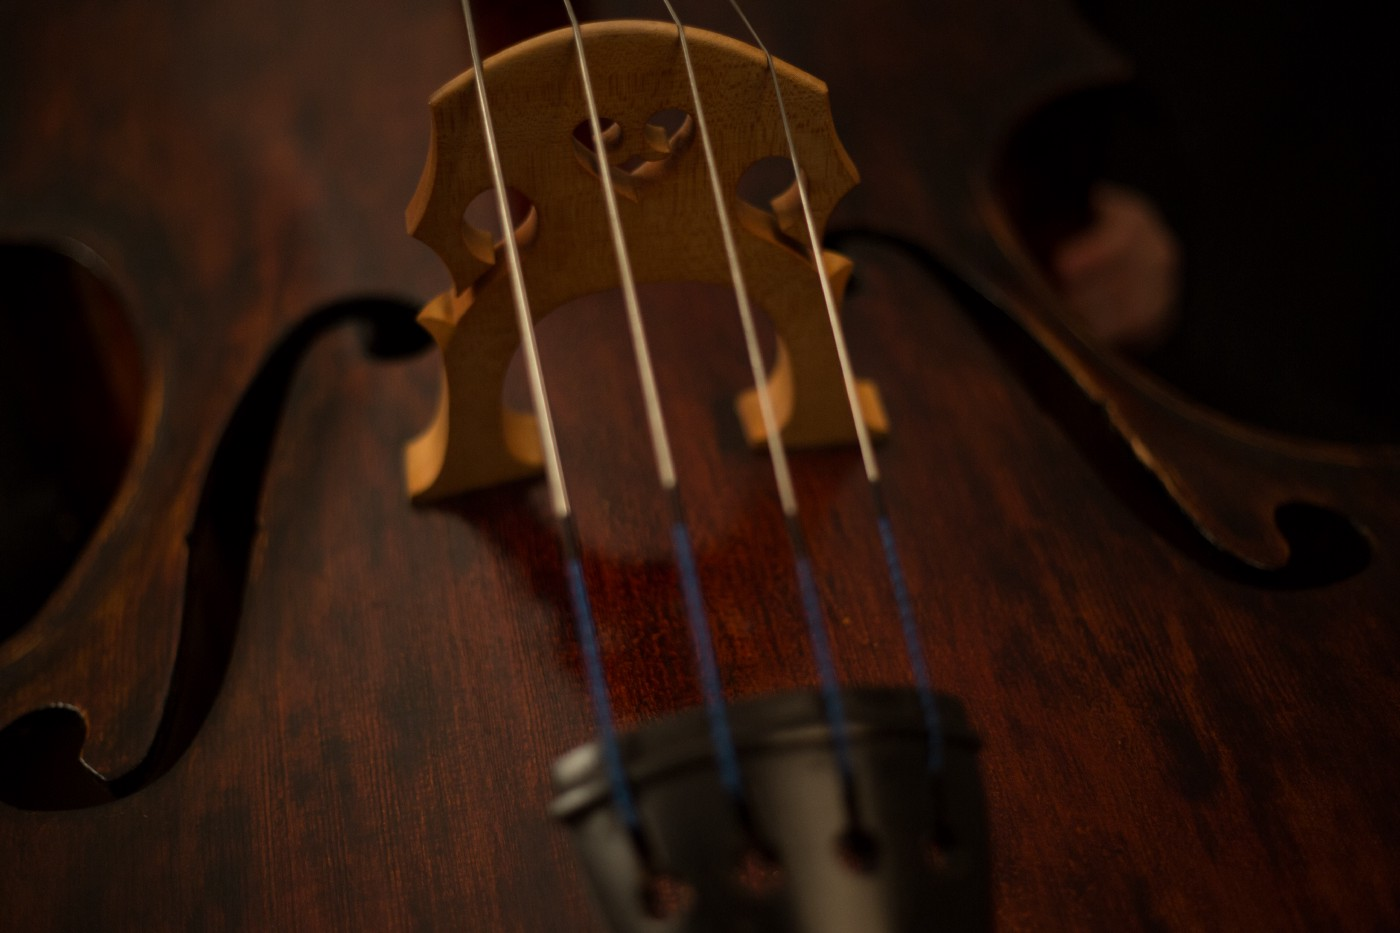 Violas have a smooth, dark tone and often described as being closest to the pitch of a human voice.